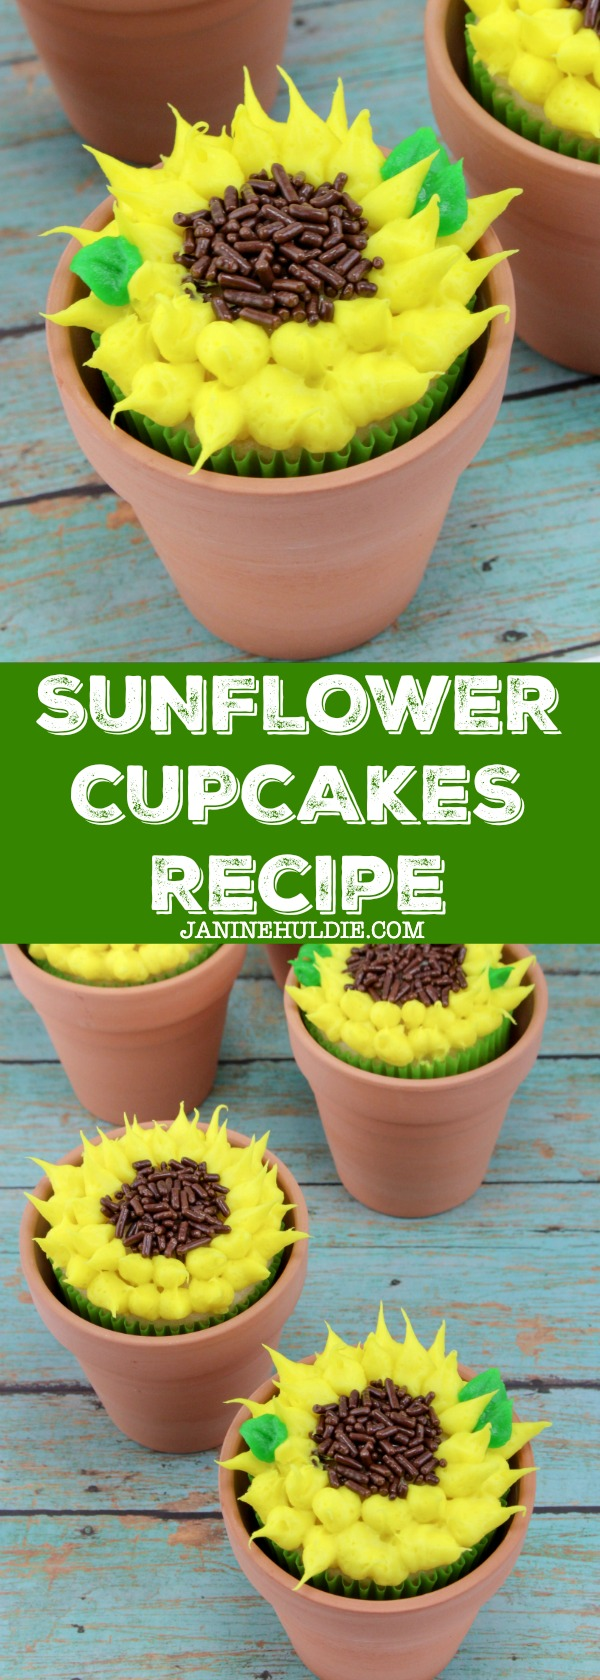 Sunflower Cupcakes Recipe